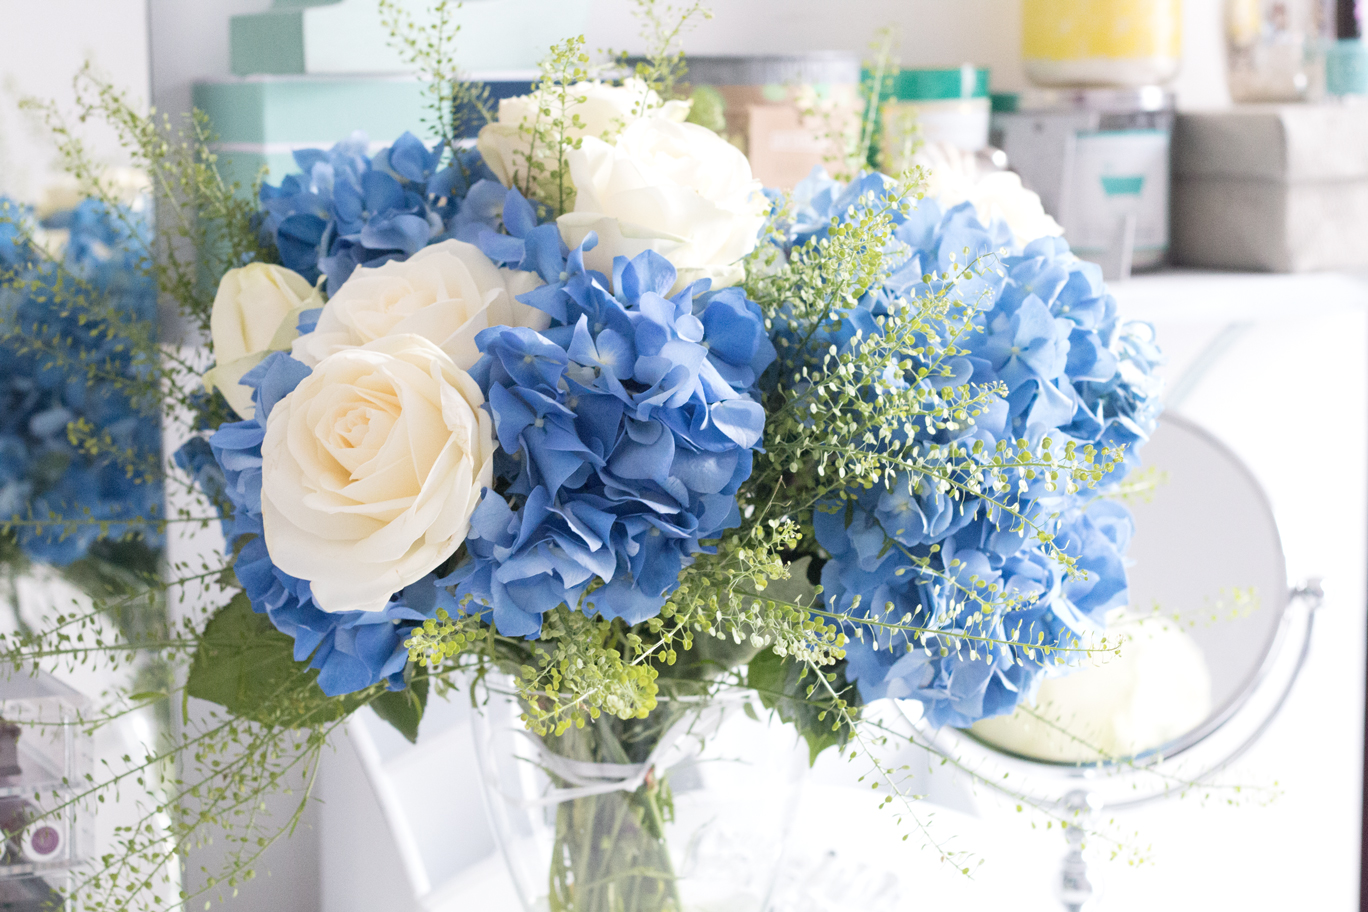 Friday flowers britton loves blossoming gifts are a relatively new company in the uk specialising in week long flower deliveries of any bouquet you choose and their current summer izmirmasajfo